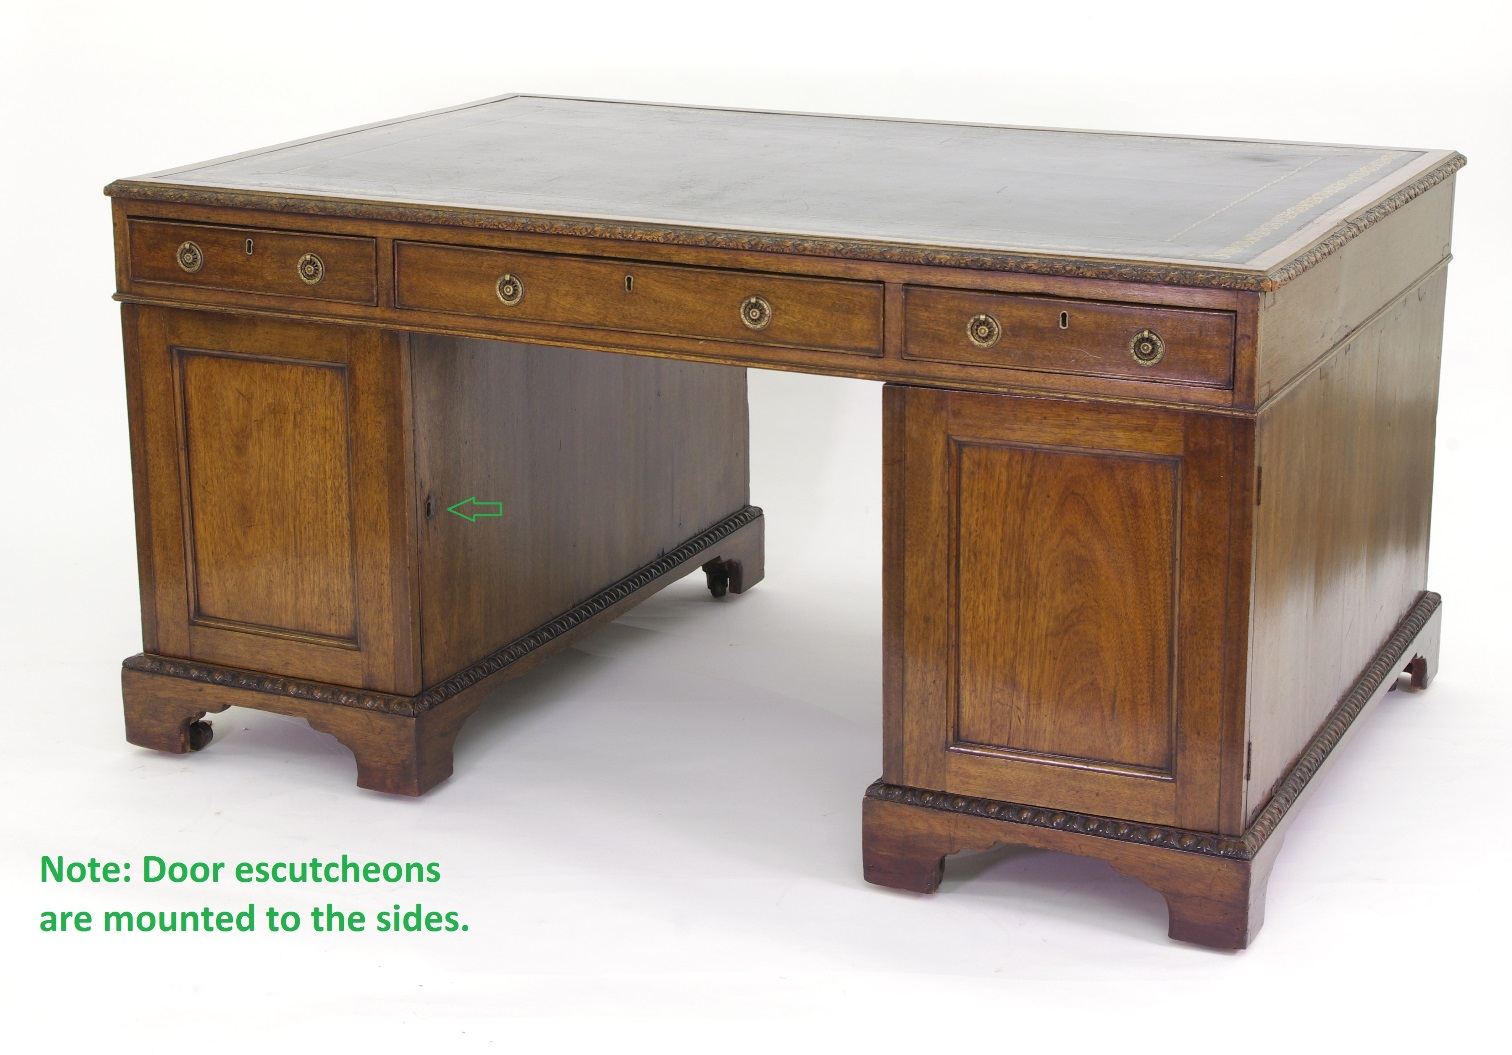 View 7: Victorian Mahogany Partners Desk, c. 1840-60